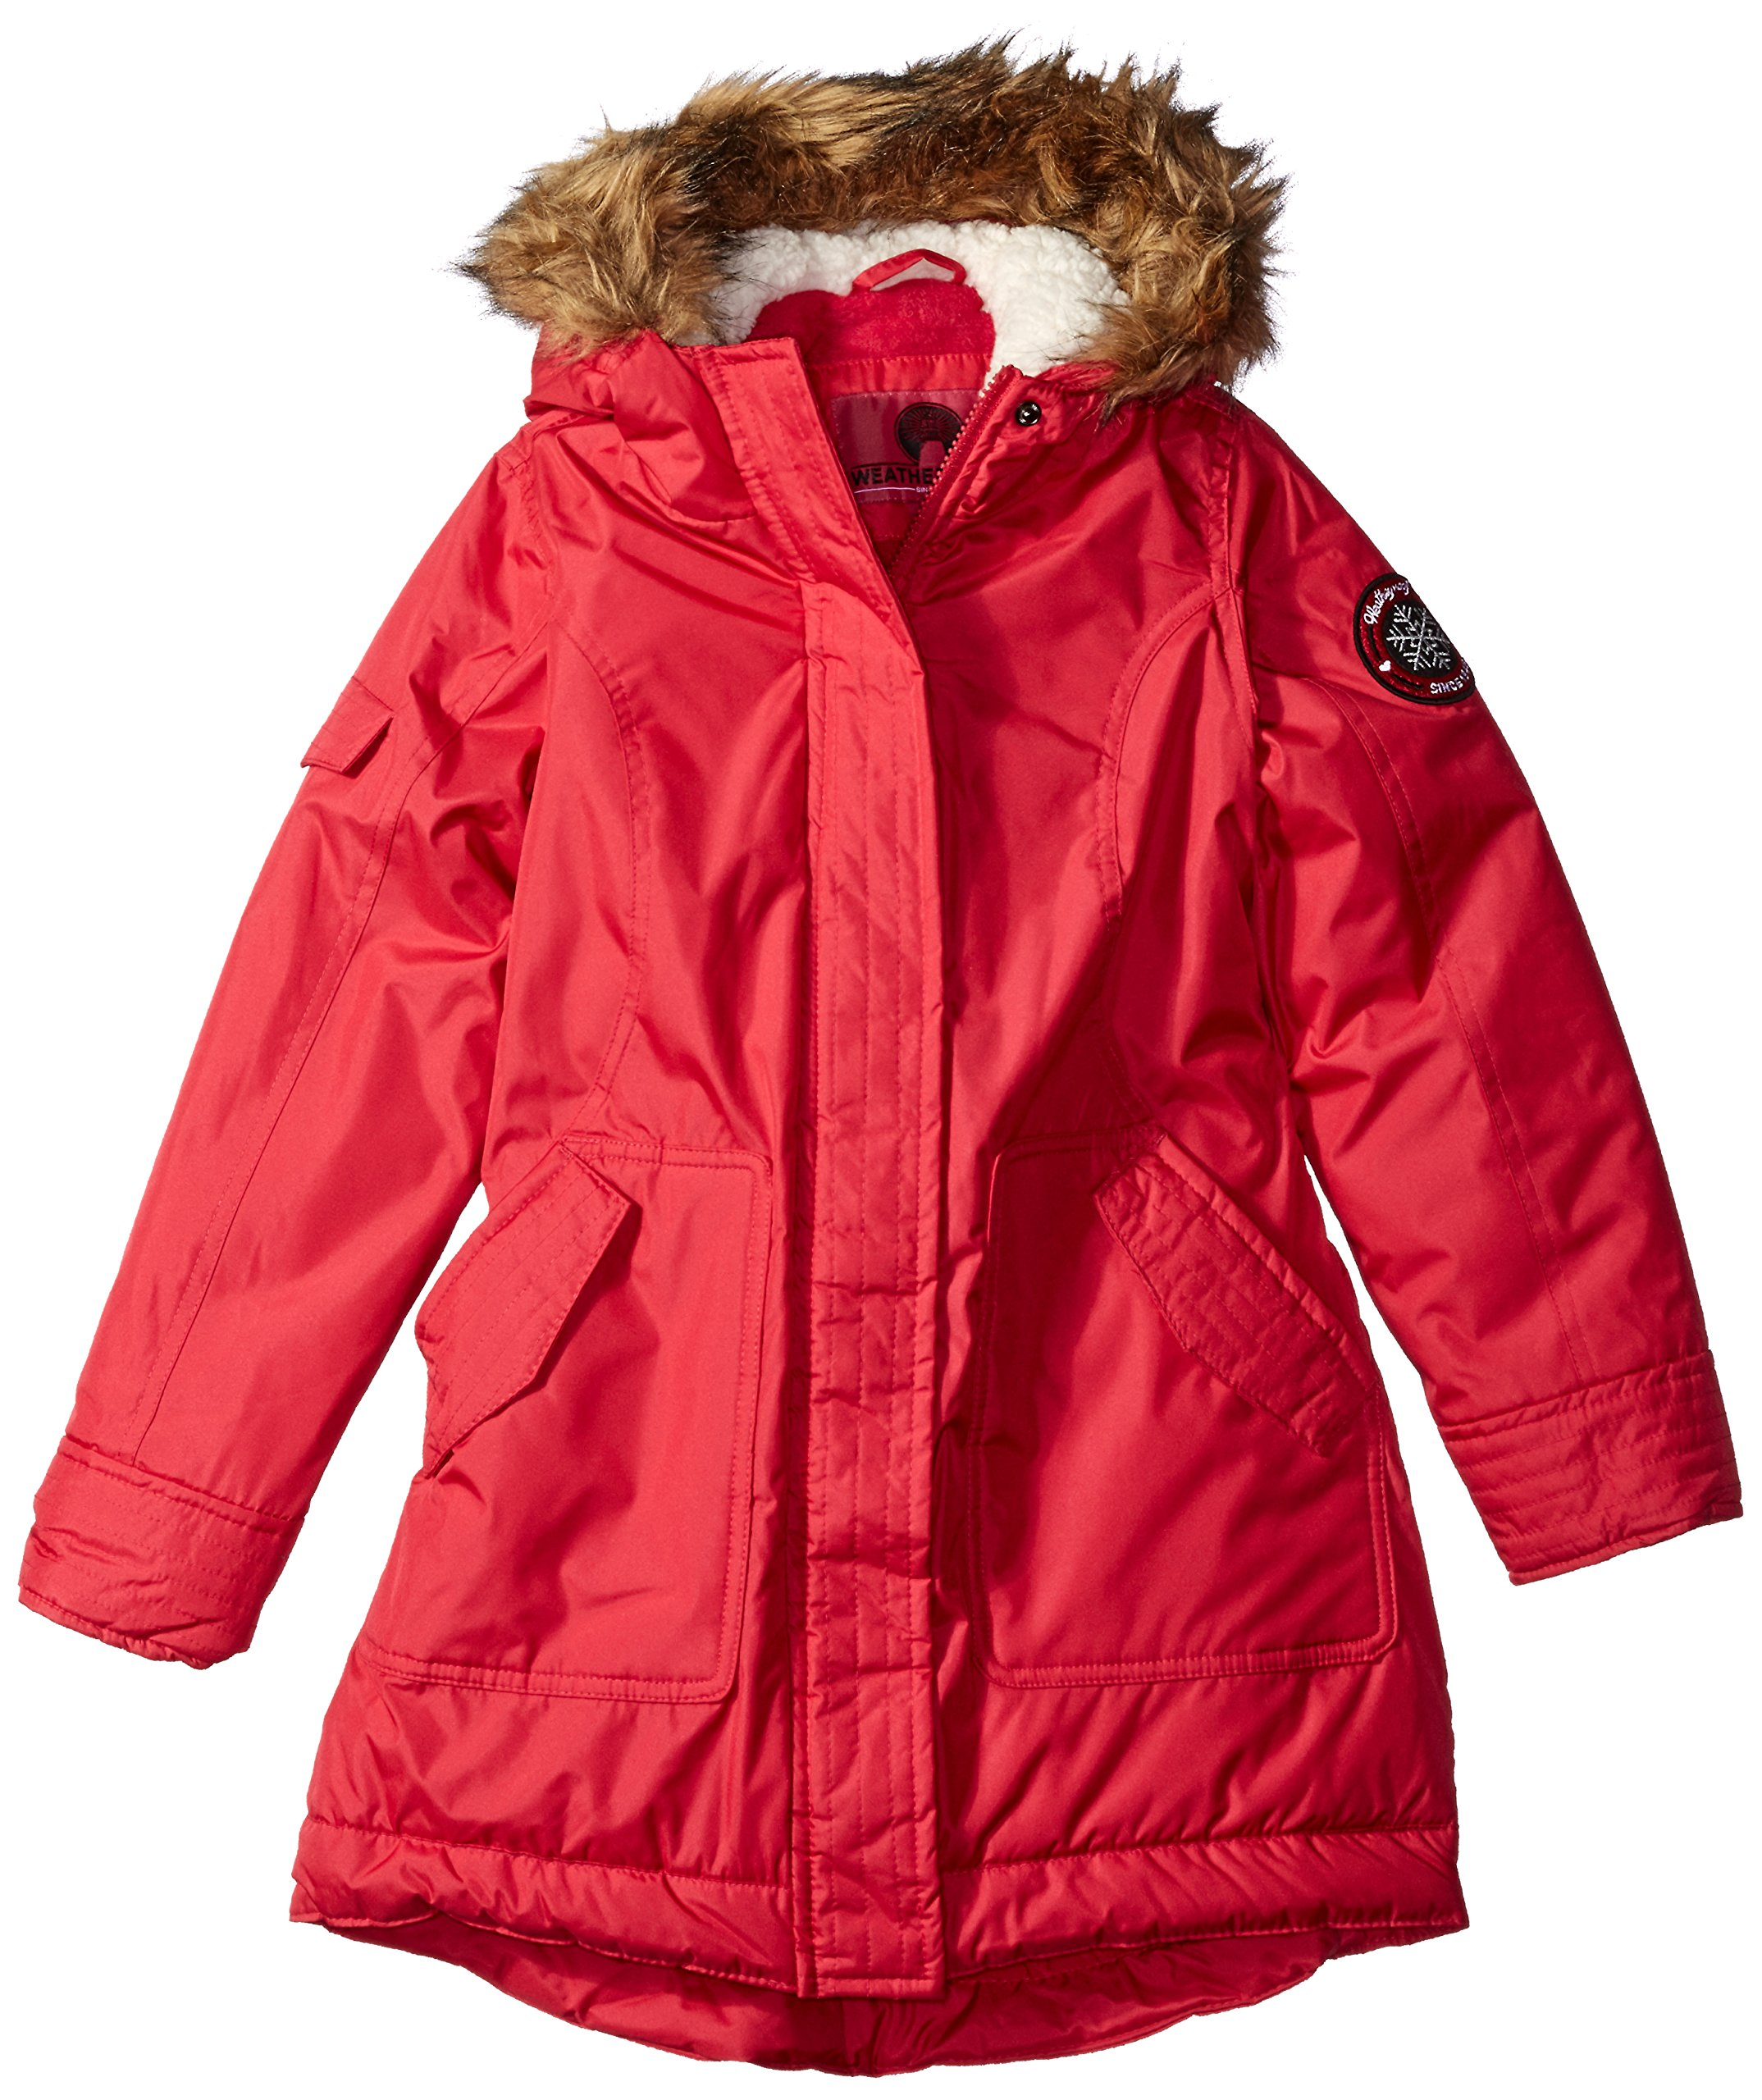 Weatherproof Little Girls' Fashion Outerwear Jacket (More Styles Available), Rose Red a, 5/6